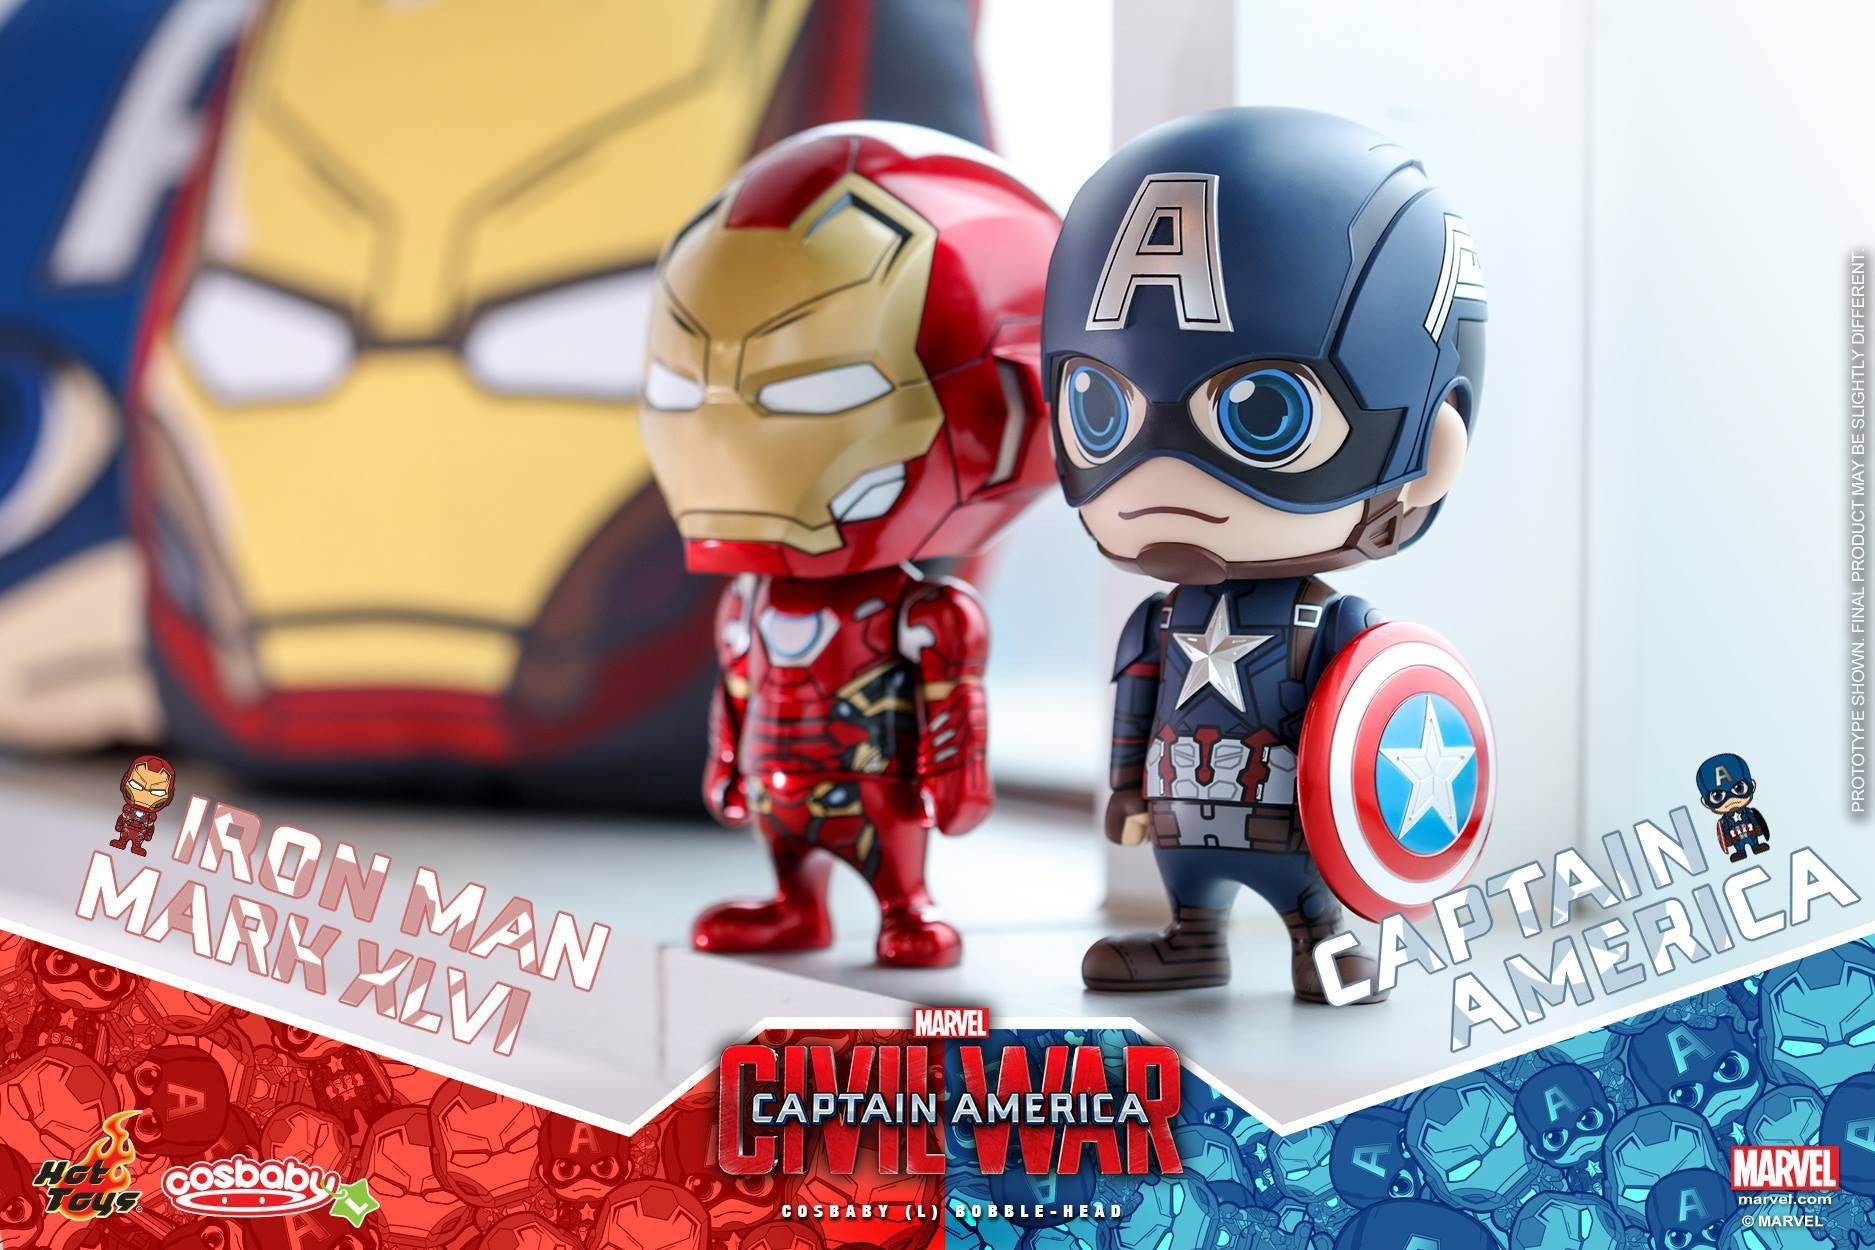 Hot Toys - COSB323 - Captain America: Civil War - Captain America Cosbaby (L) Bobble-Head - Marvelous Toys - 2